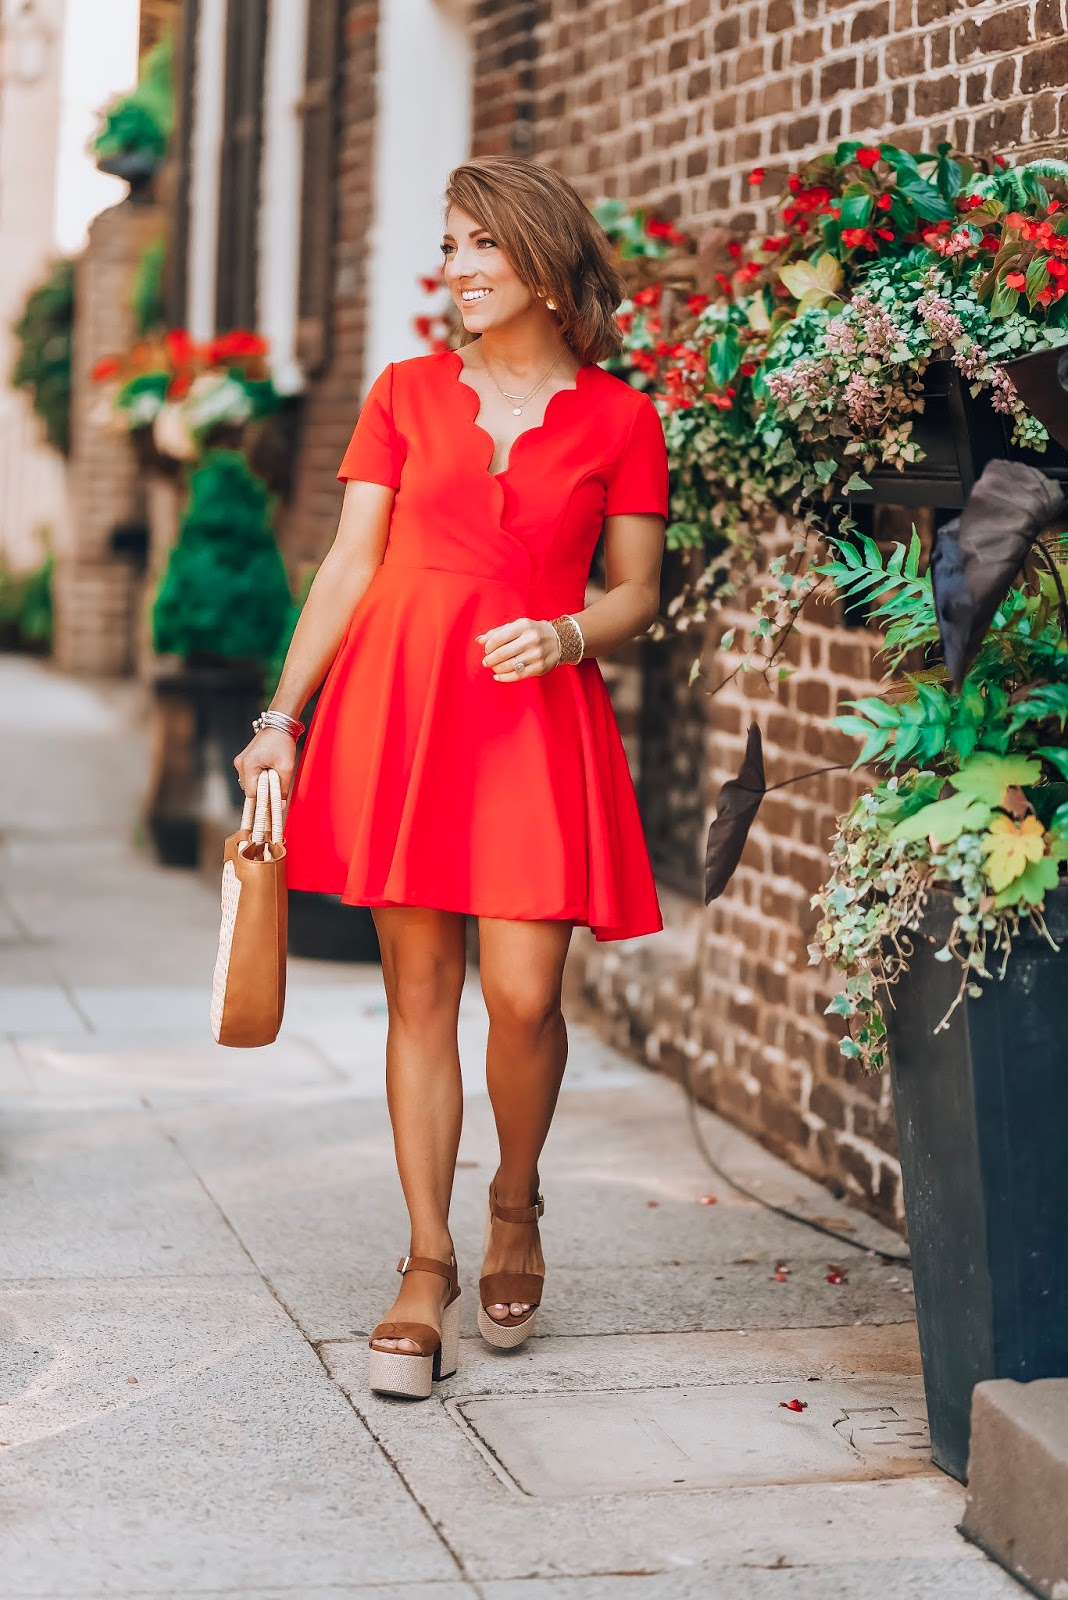 Under $60 Scallop Red Dress in Charleston - Something Delightful Blog #springstyle